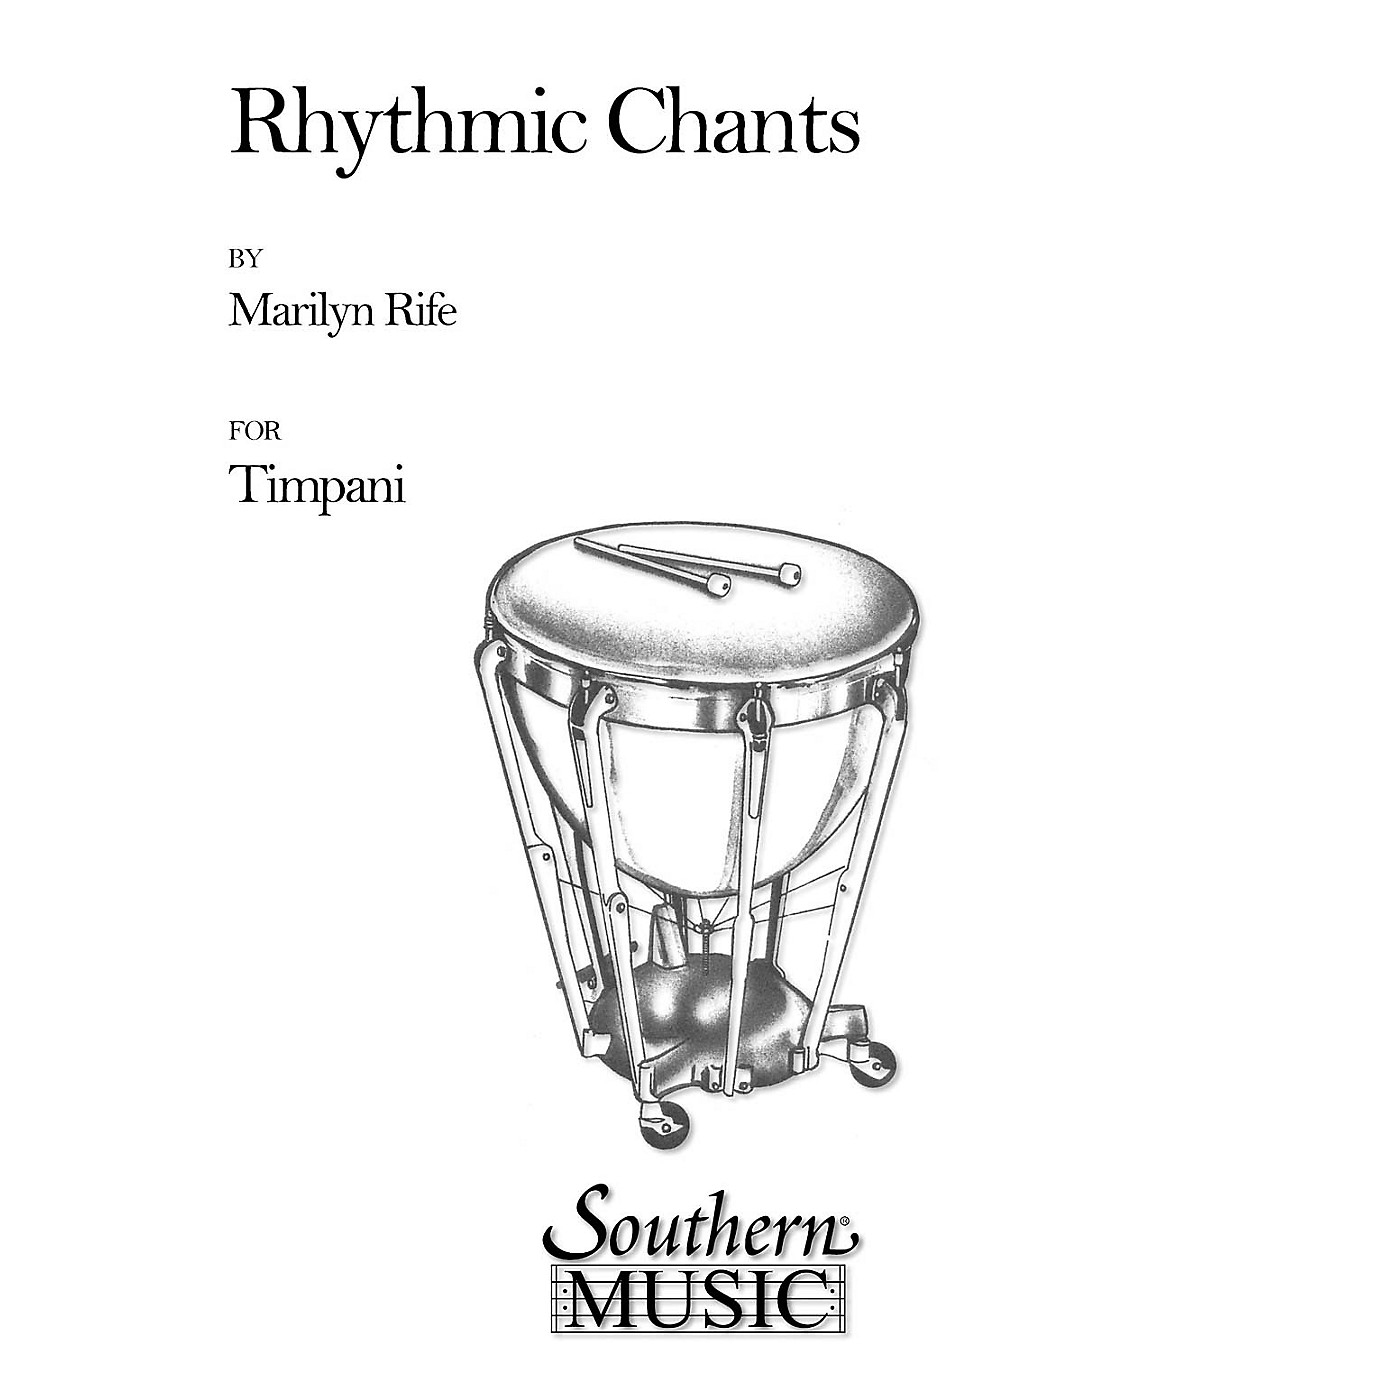 Hal Leonard Rhythmic Chants (Percussion Music/Timpani - Other Musi) Southern Music Series Composed by Rife, Marilyn thumbnail